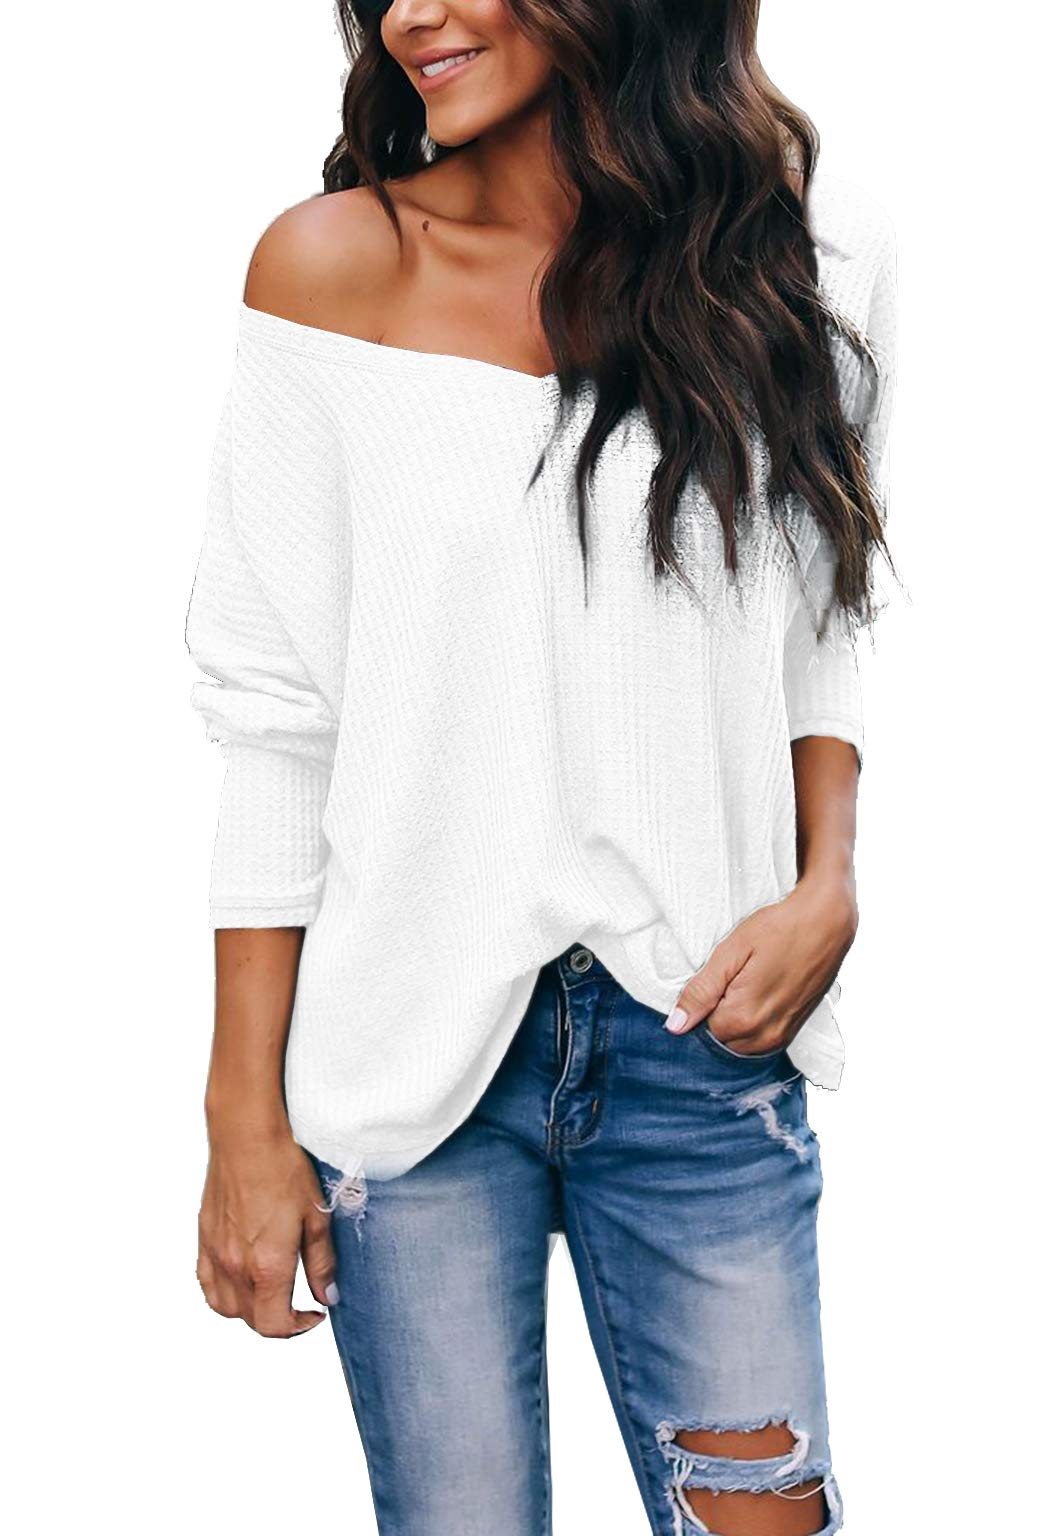 iGENJUN Women's Casual V-Neck Off-Shoulder Batwing Sleeve Pullover Sweater Tops,